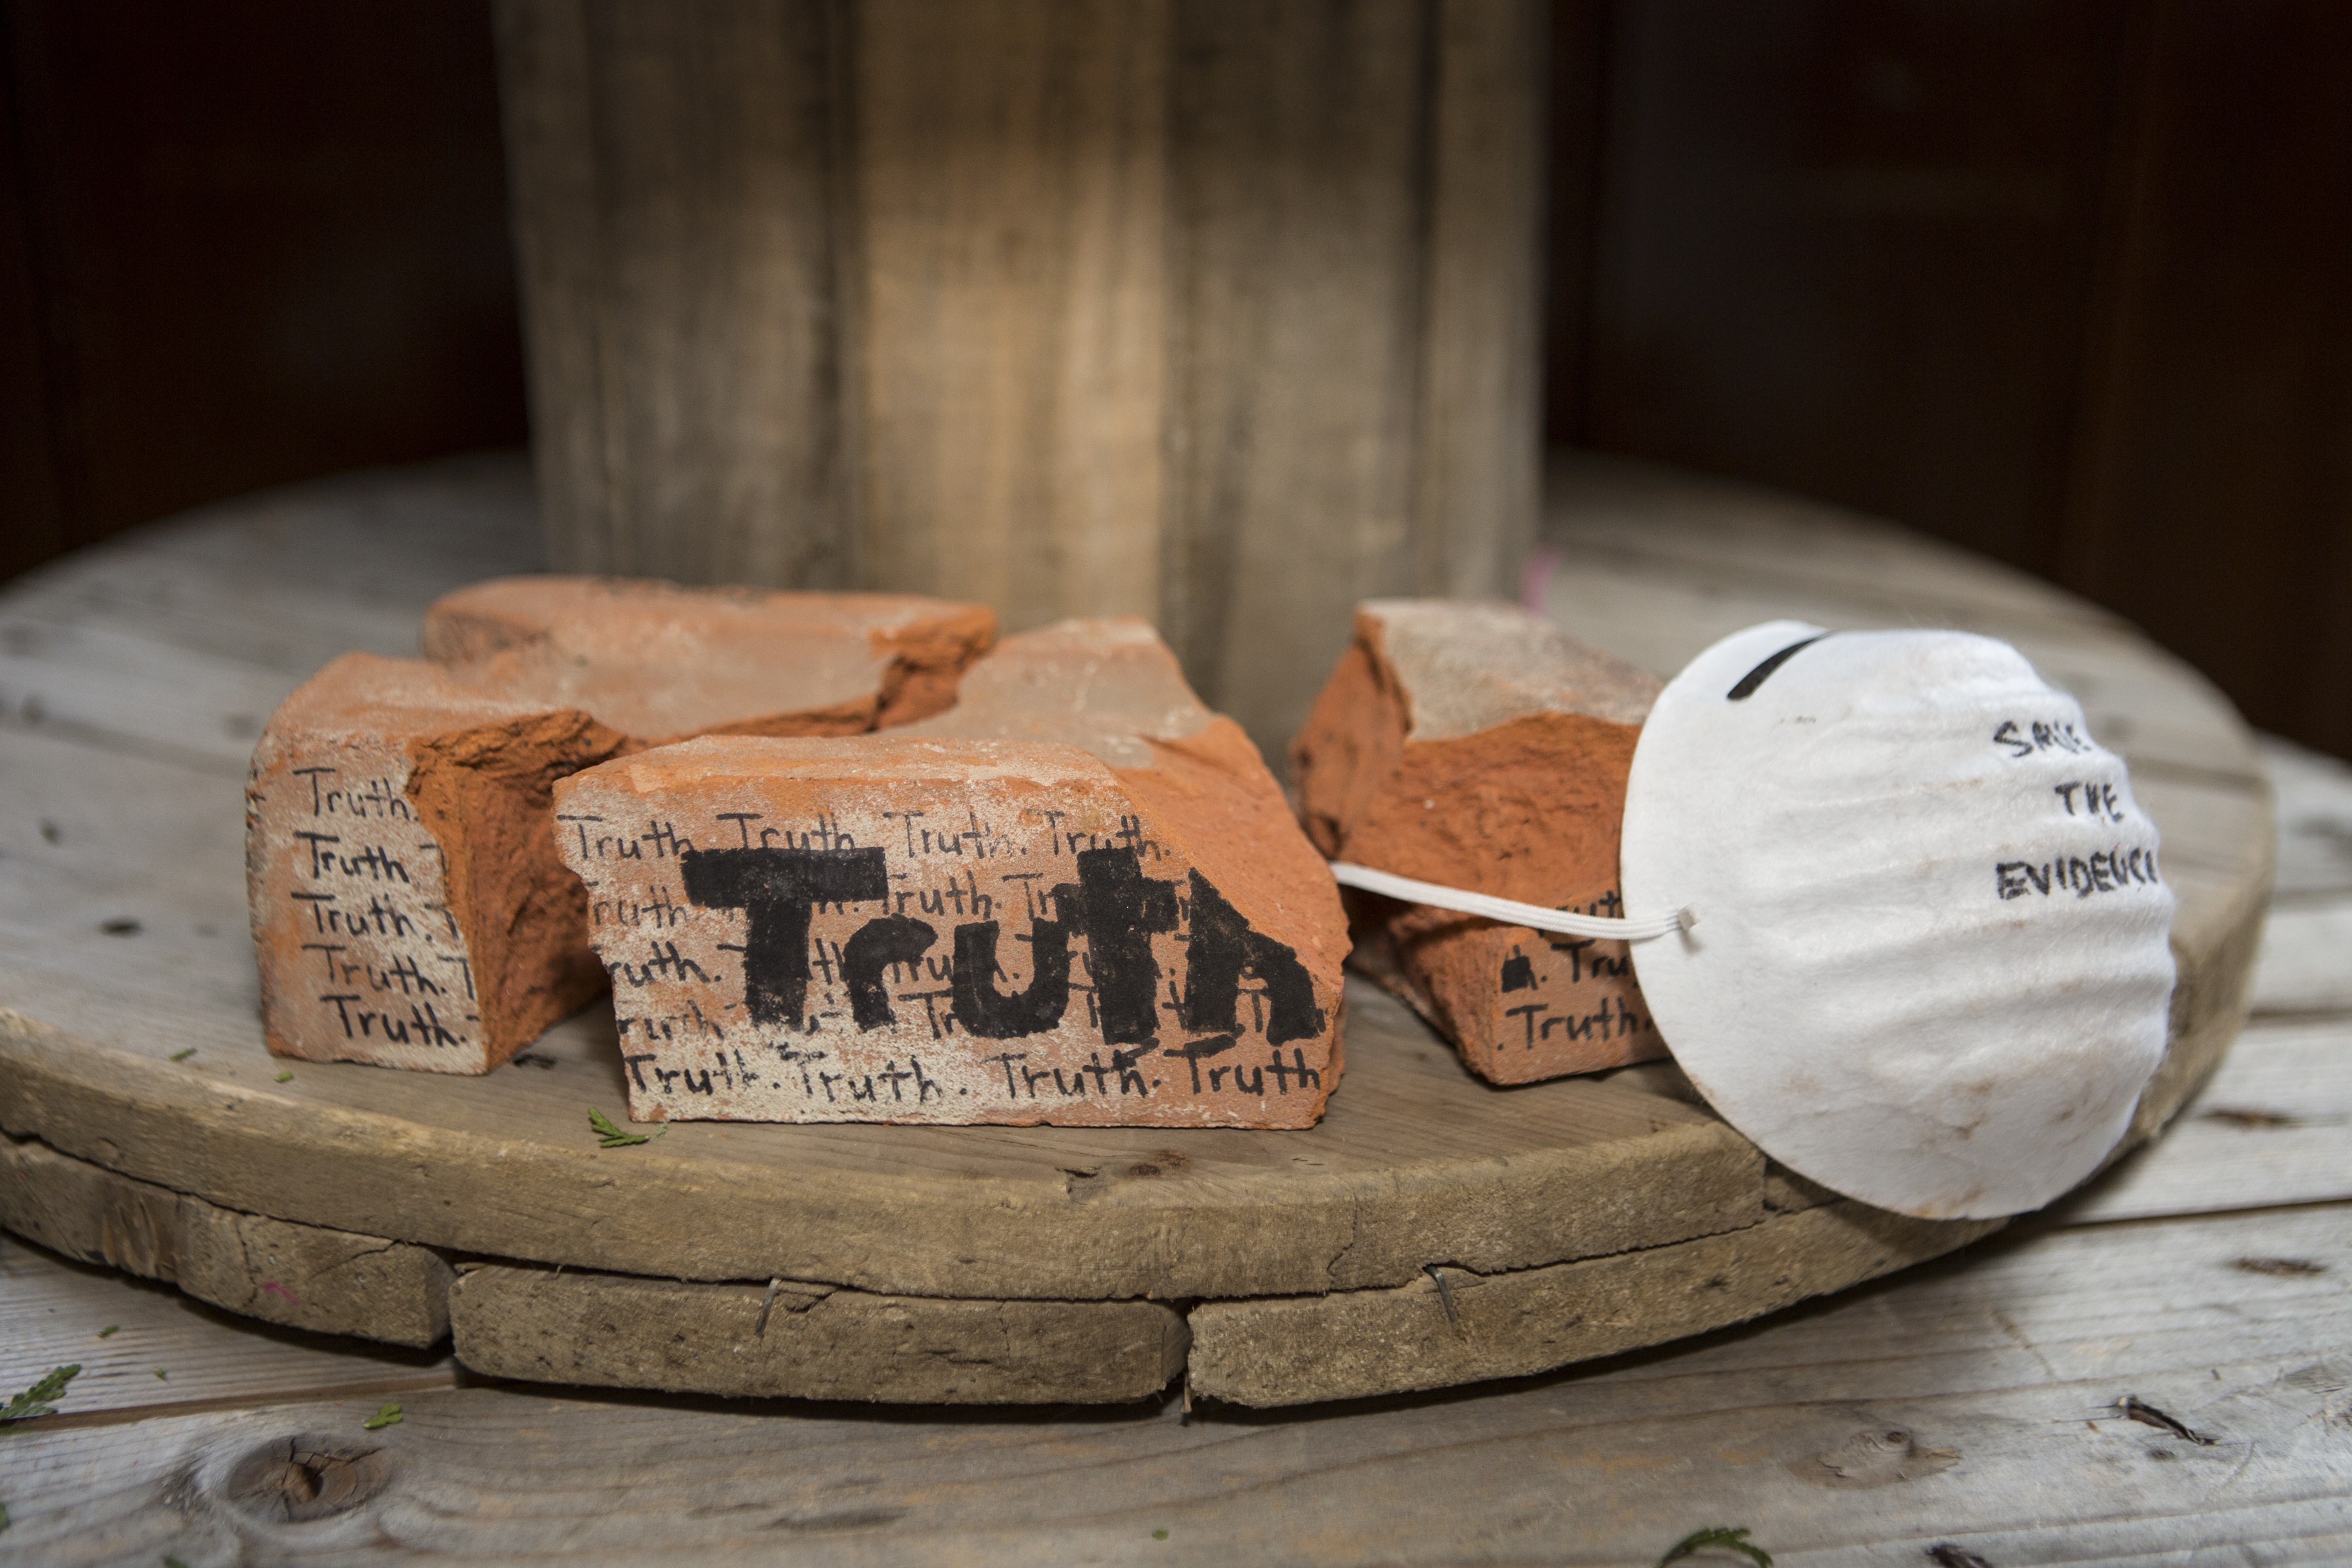 Students create a model memorial using broken bricks with the words Truth written on them for residential school survivors and those who did not survive in response to a visit to the former Mohawk Institute residential school and contemporary testimony of intergenerational survivor Kim Wheatley. Photo courtesy Nick Kozak for Facing History and Ourselves.